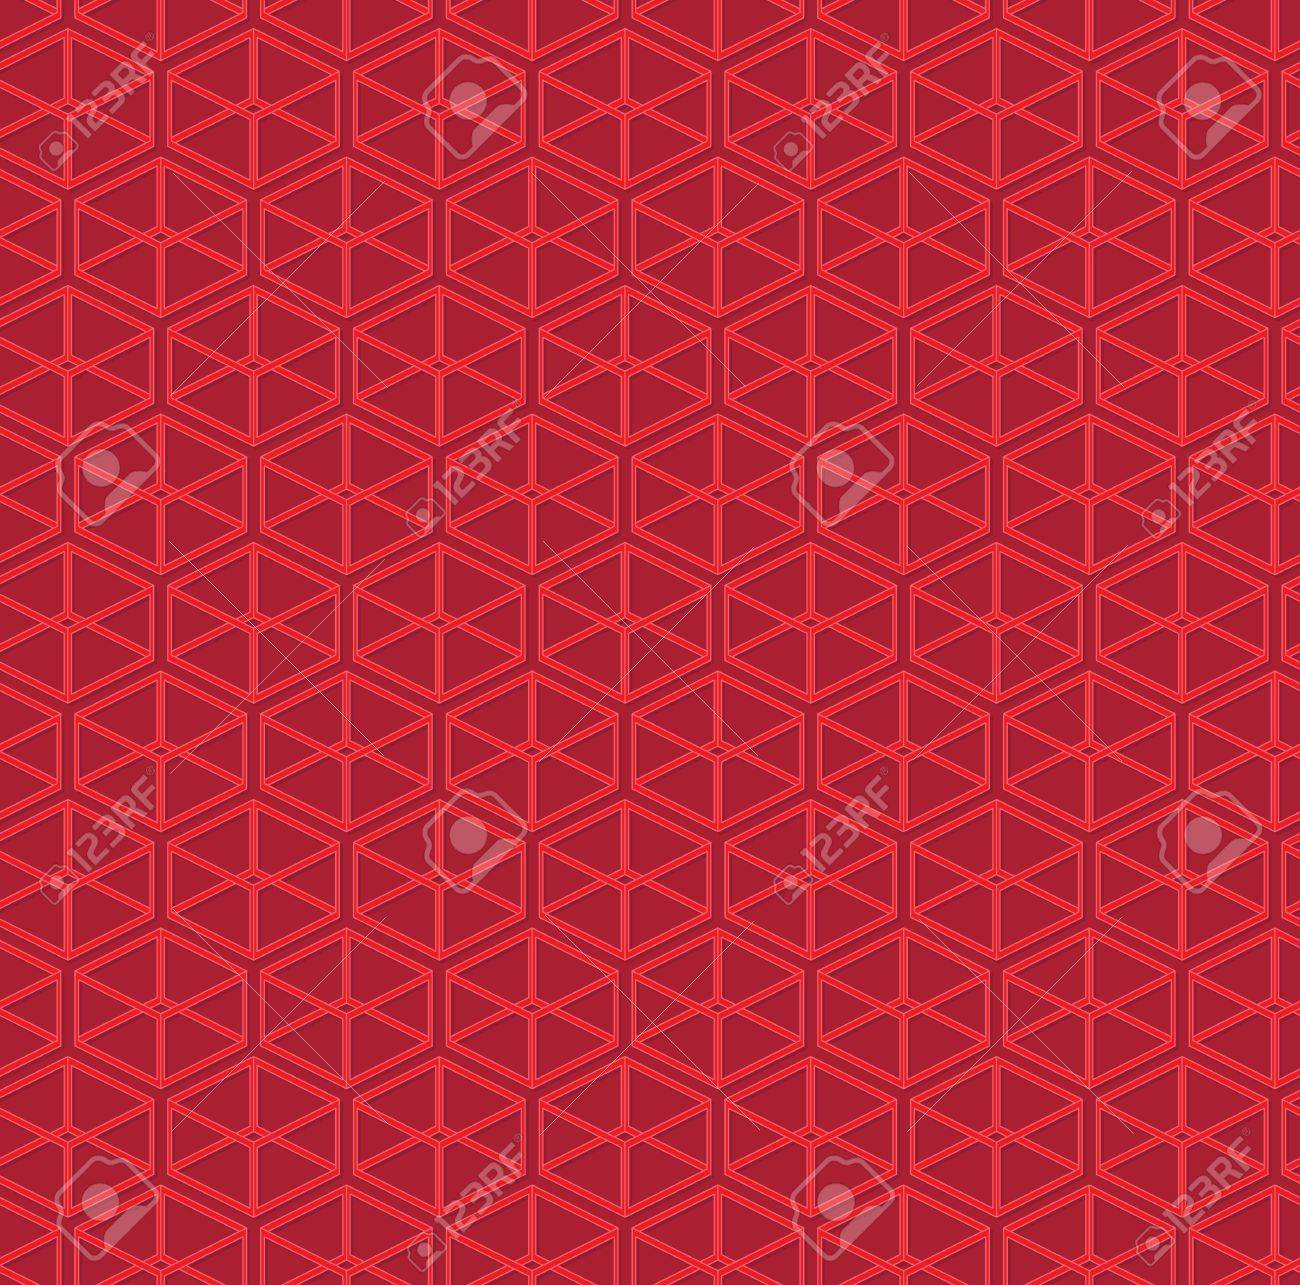 Red abstract pattern of parallelepipeds Stock Vector - 14187457